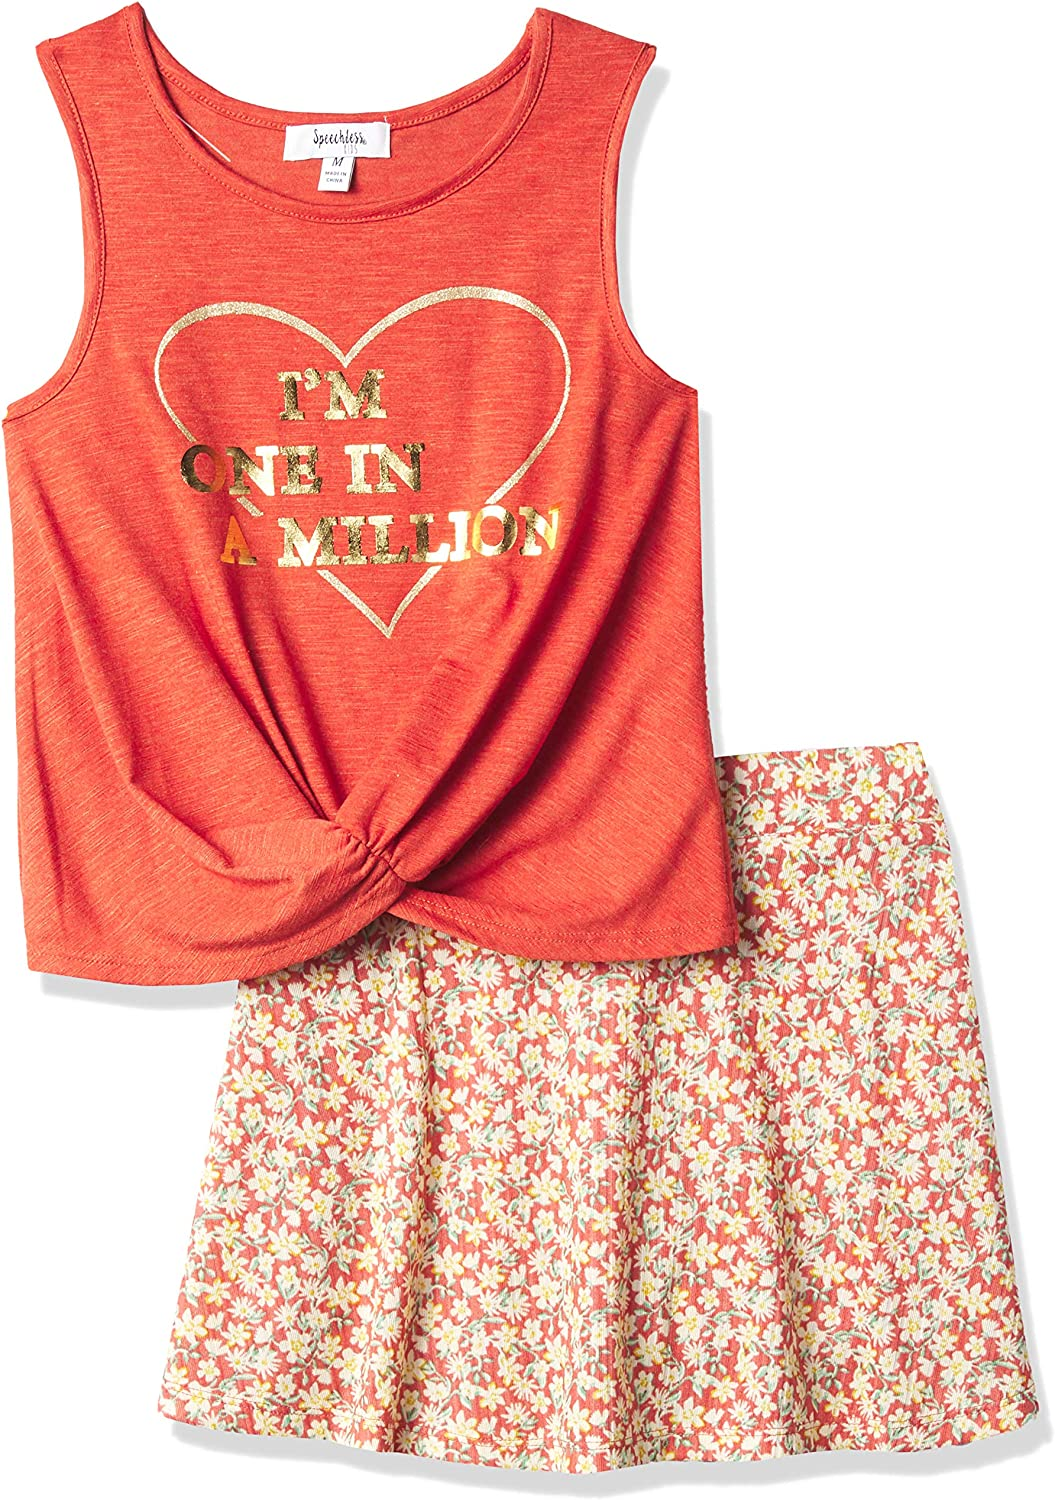 Speechless Girls' Sleeveless Top and Scooter Set: Clothing, Shoes & Jewelry